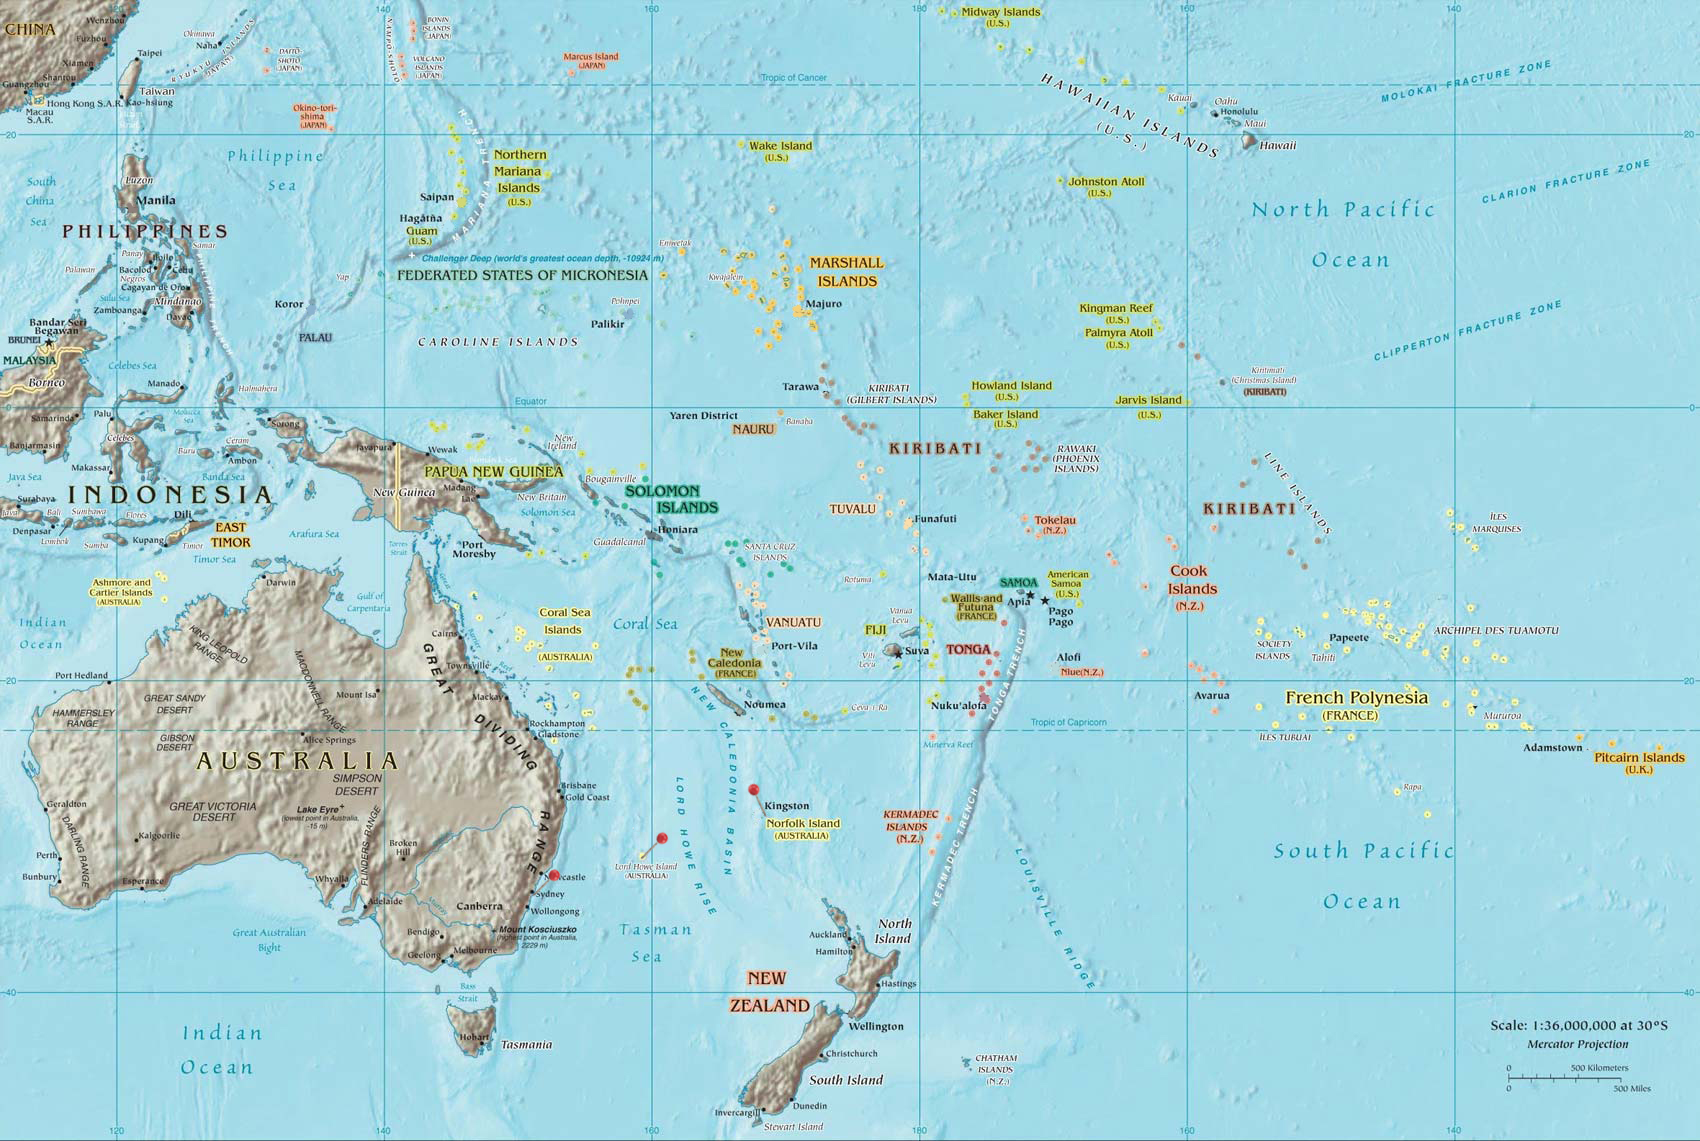 Map Of The South Pacific File:South pacific map.   Wikipedia